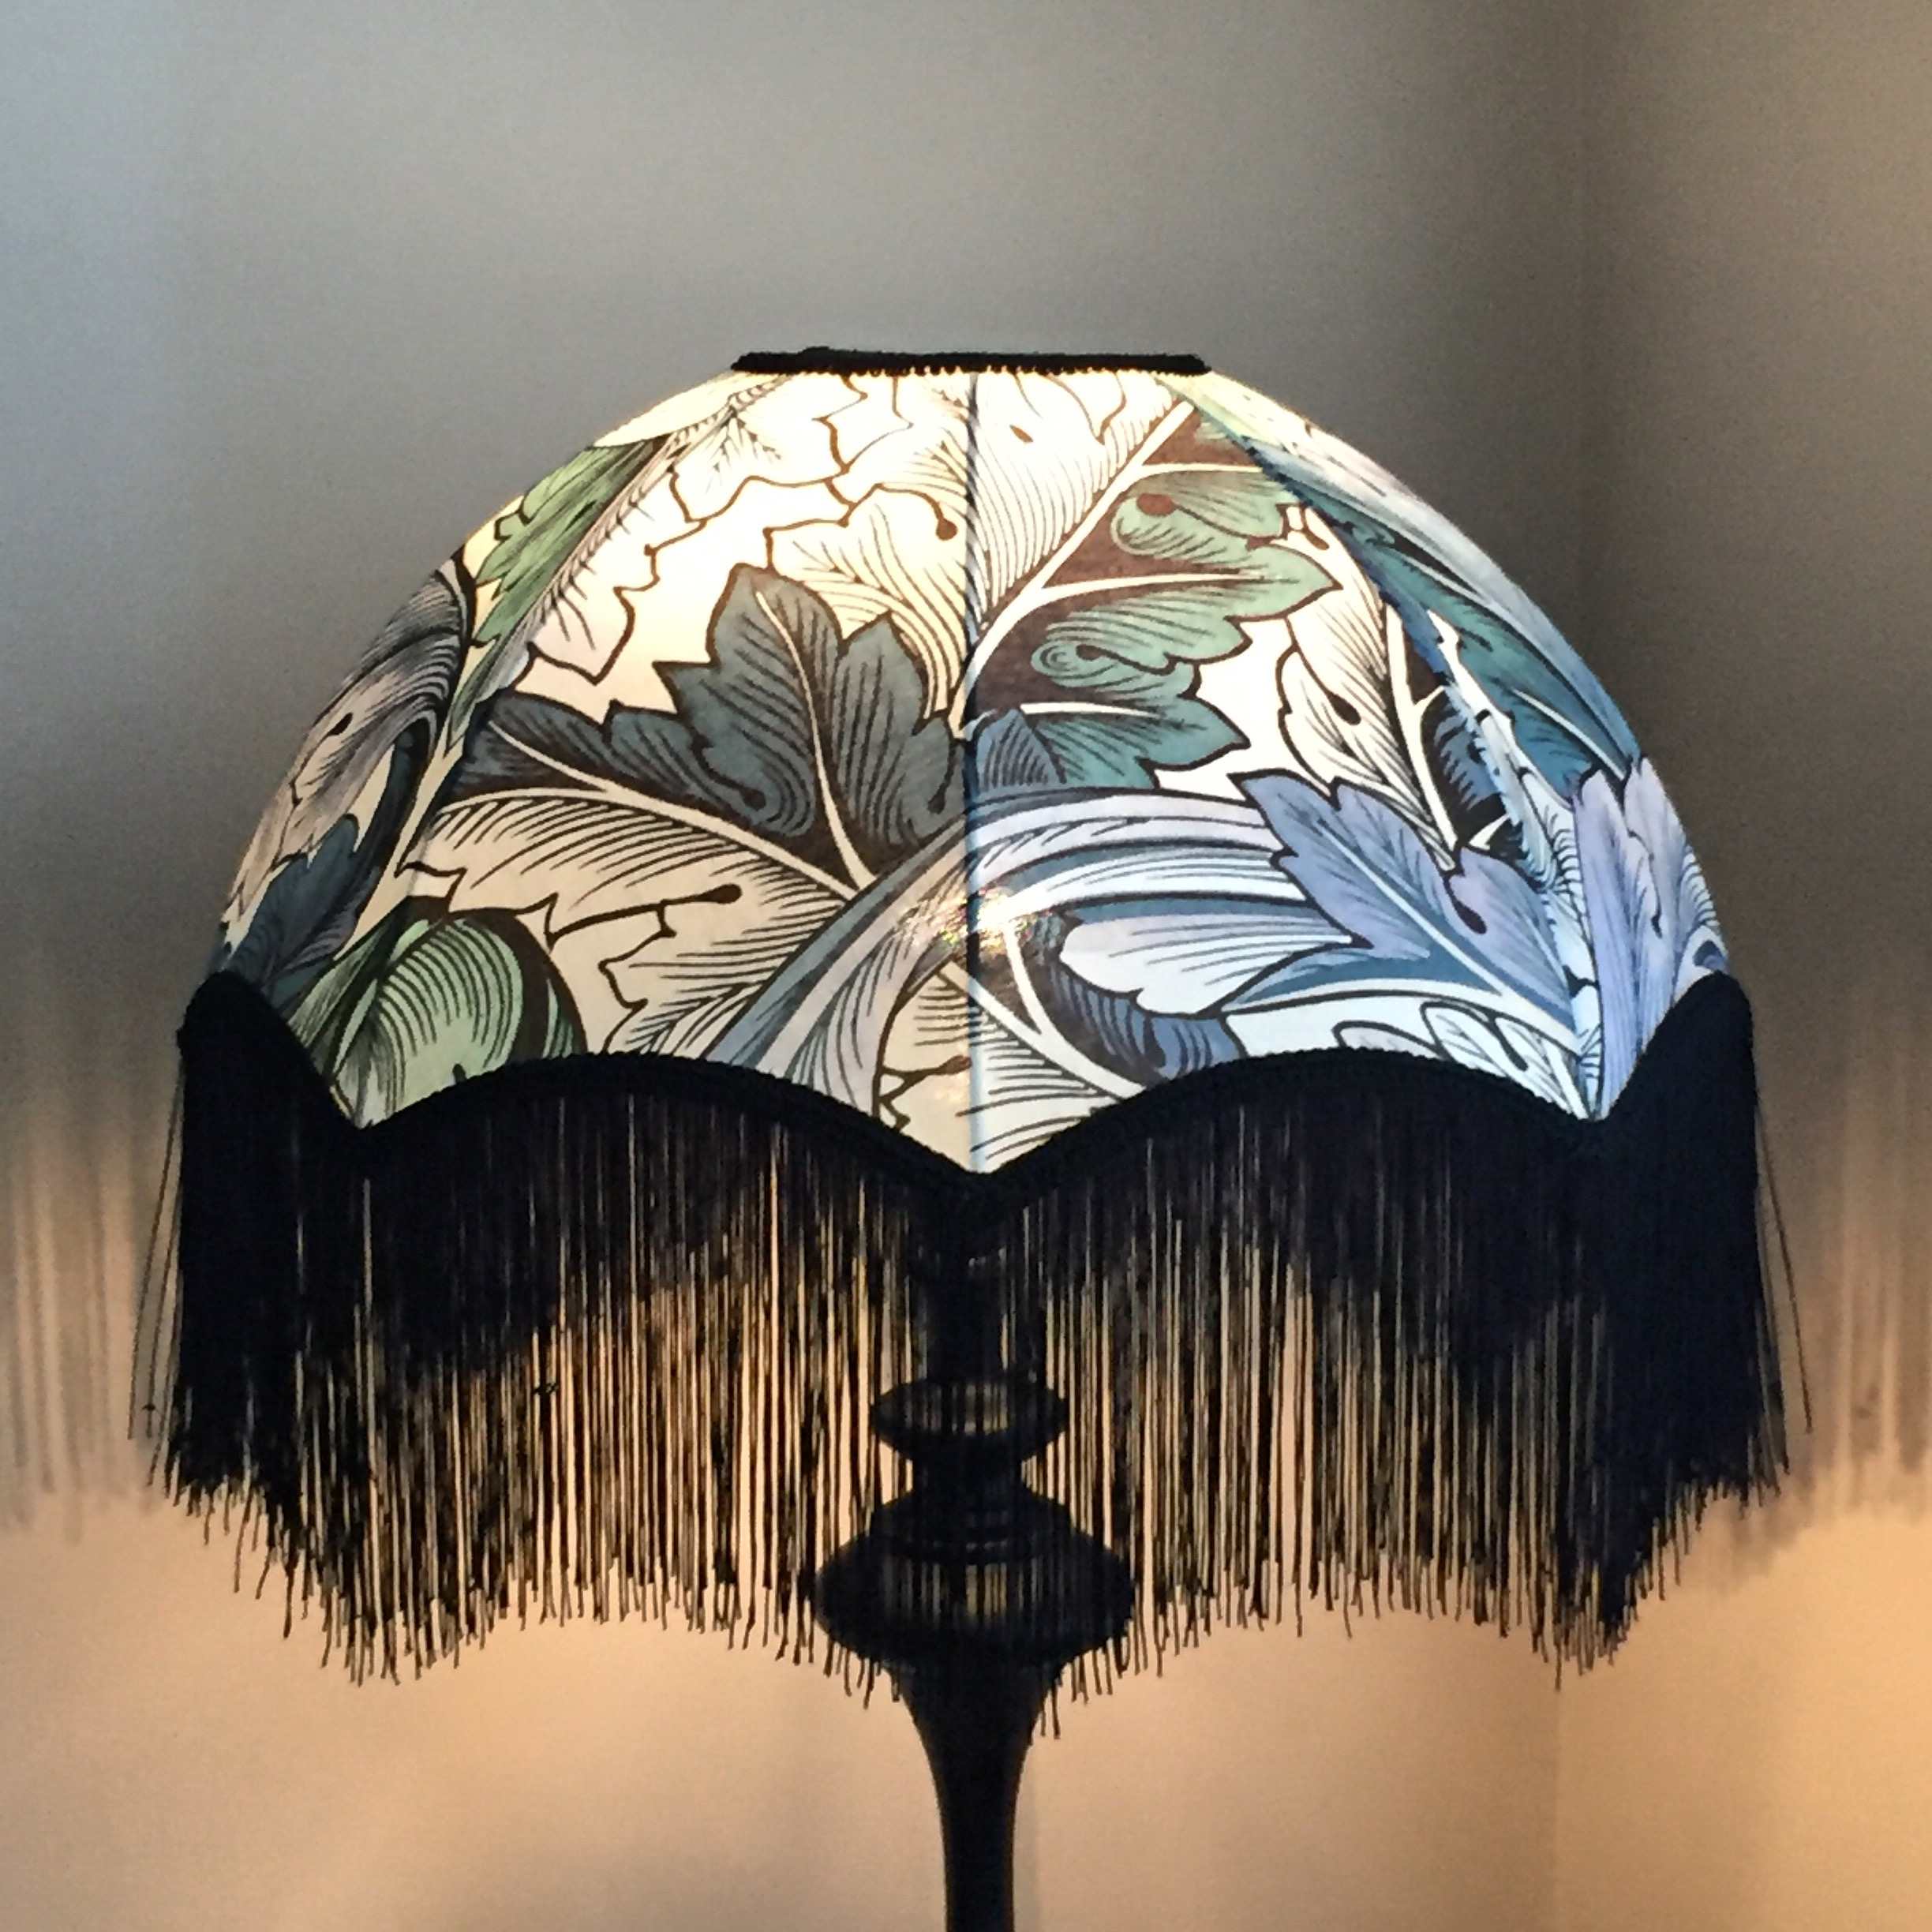 Bespoke lampshade with a fringe, fabric House of Hackney